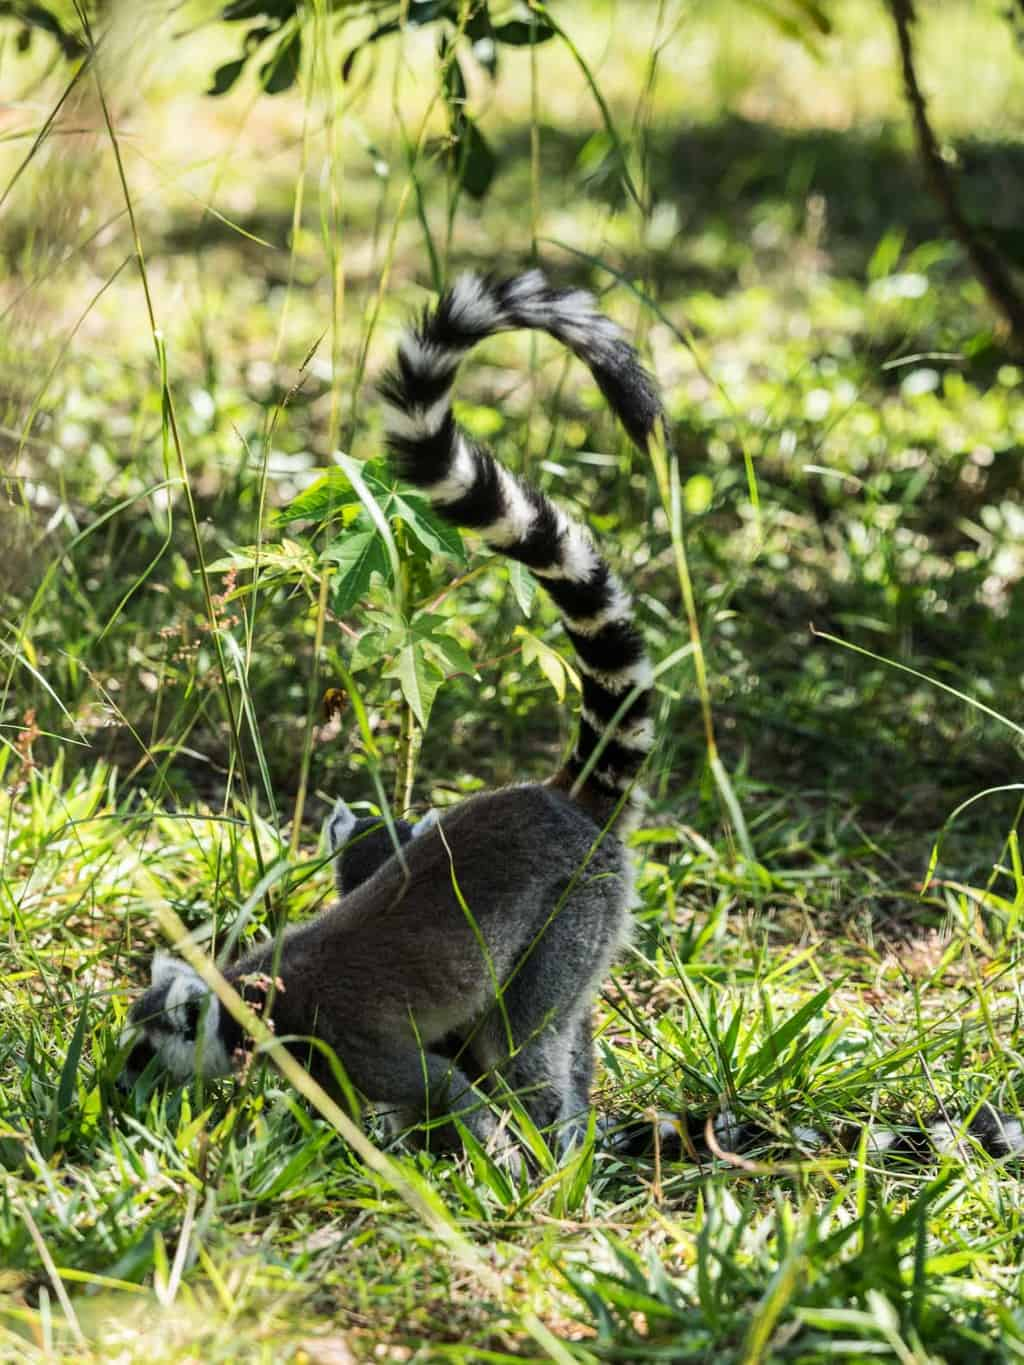 The Ring-tailed lemur is native to the south western part of Madagascar